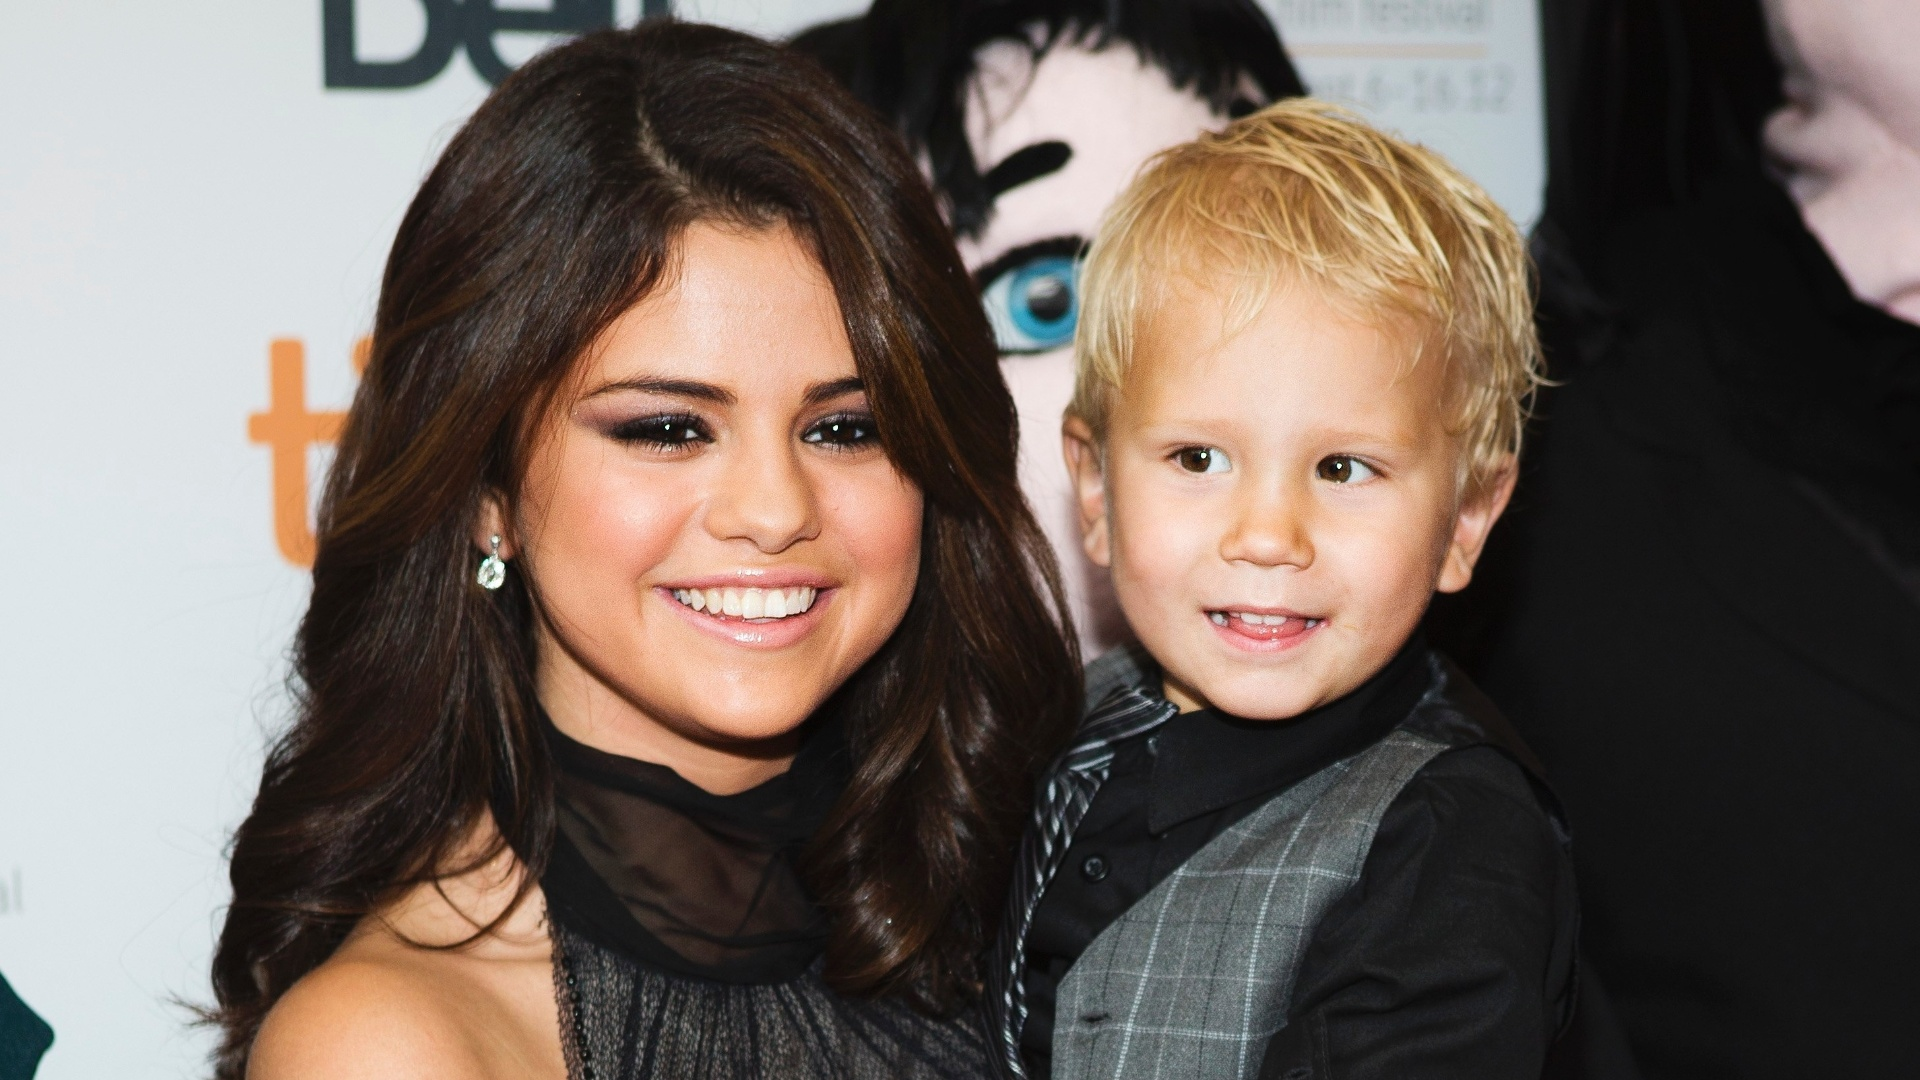 Selena Gomez segura o cunhado, Jaxon Bieber, na pr-estreia do filme 